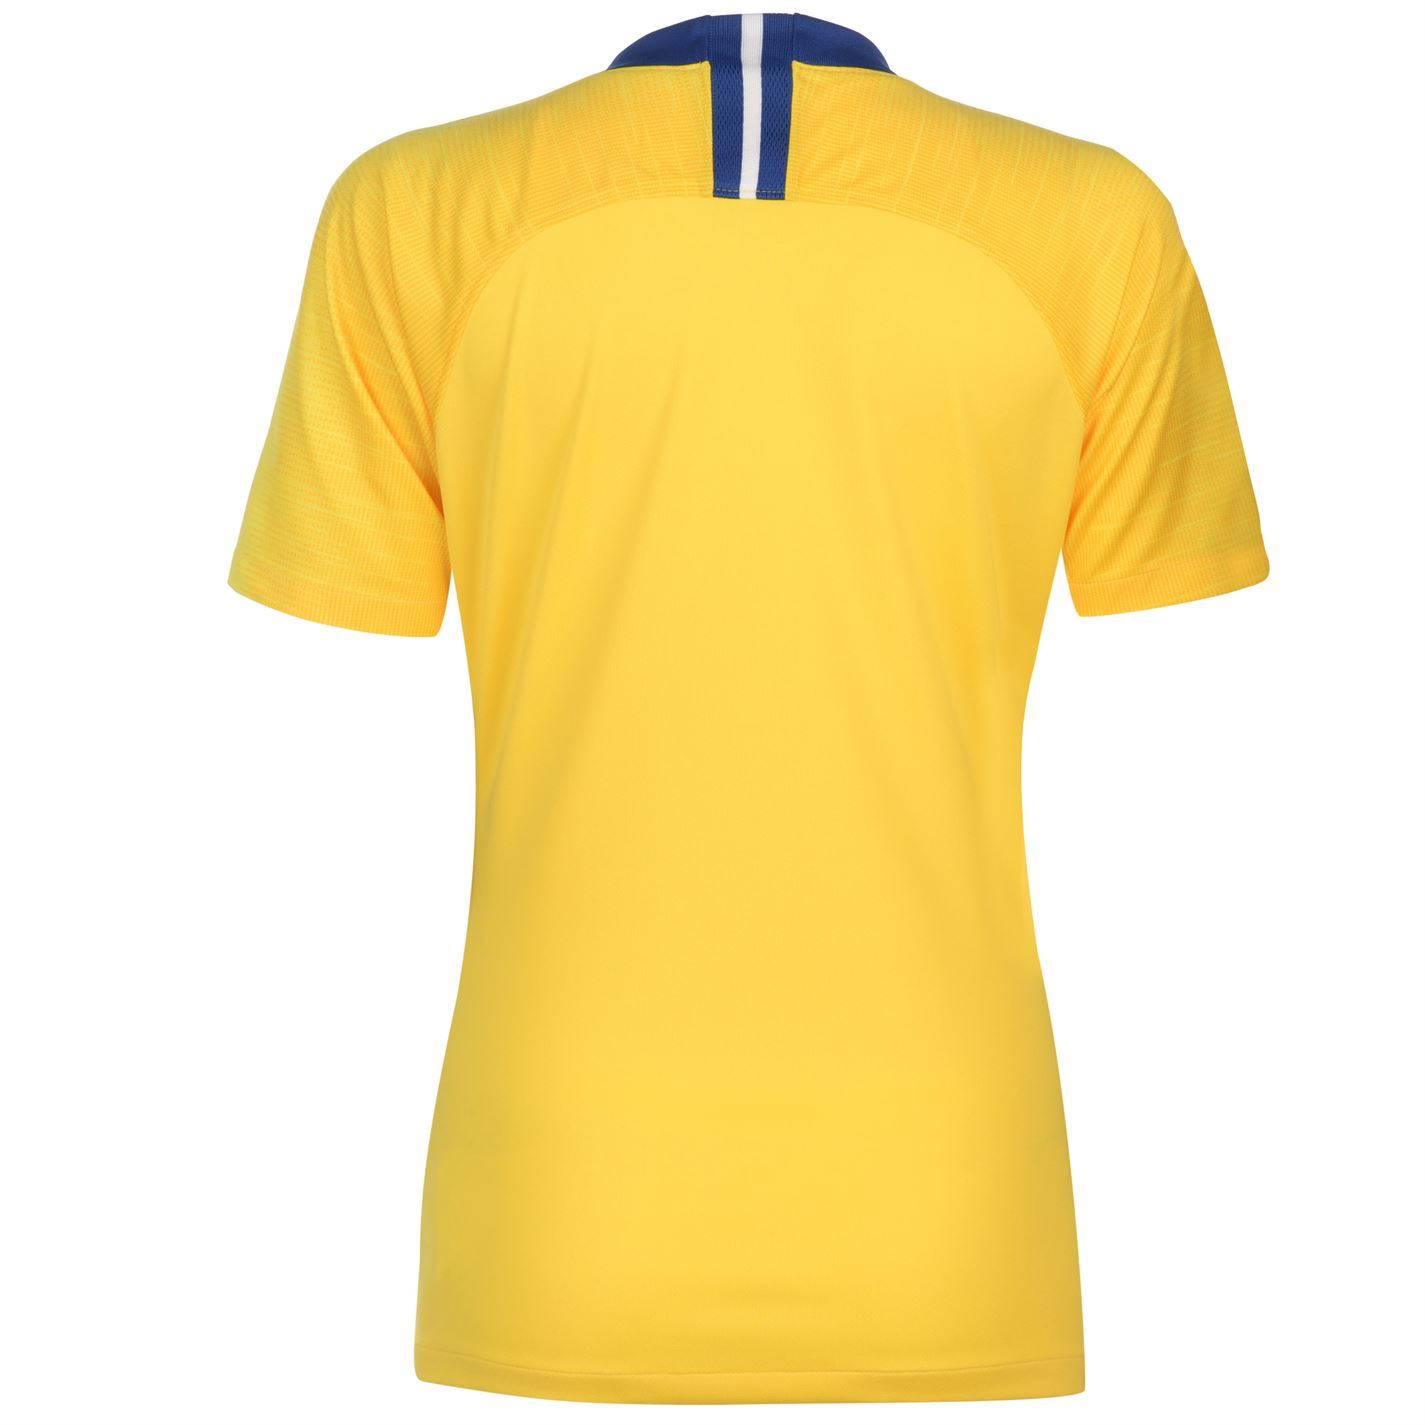 sports shoes fd627 a316a Details about Nike Chelsea Away Jersey 2018 2019 Womens Yellow Football  Soccer Fan Shirt Top